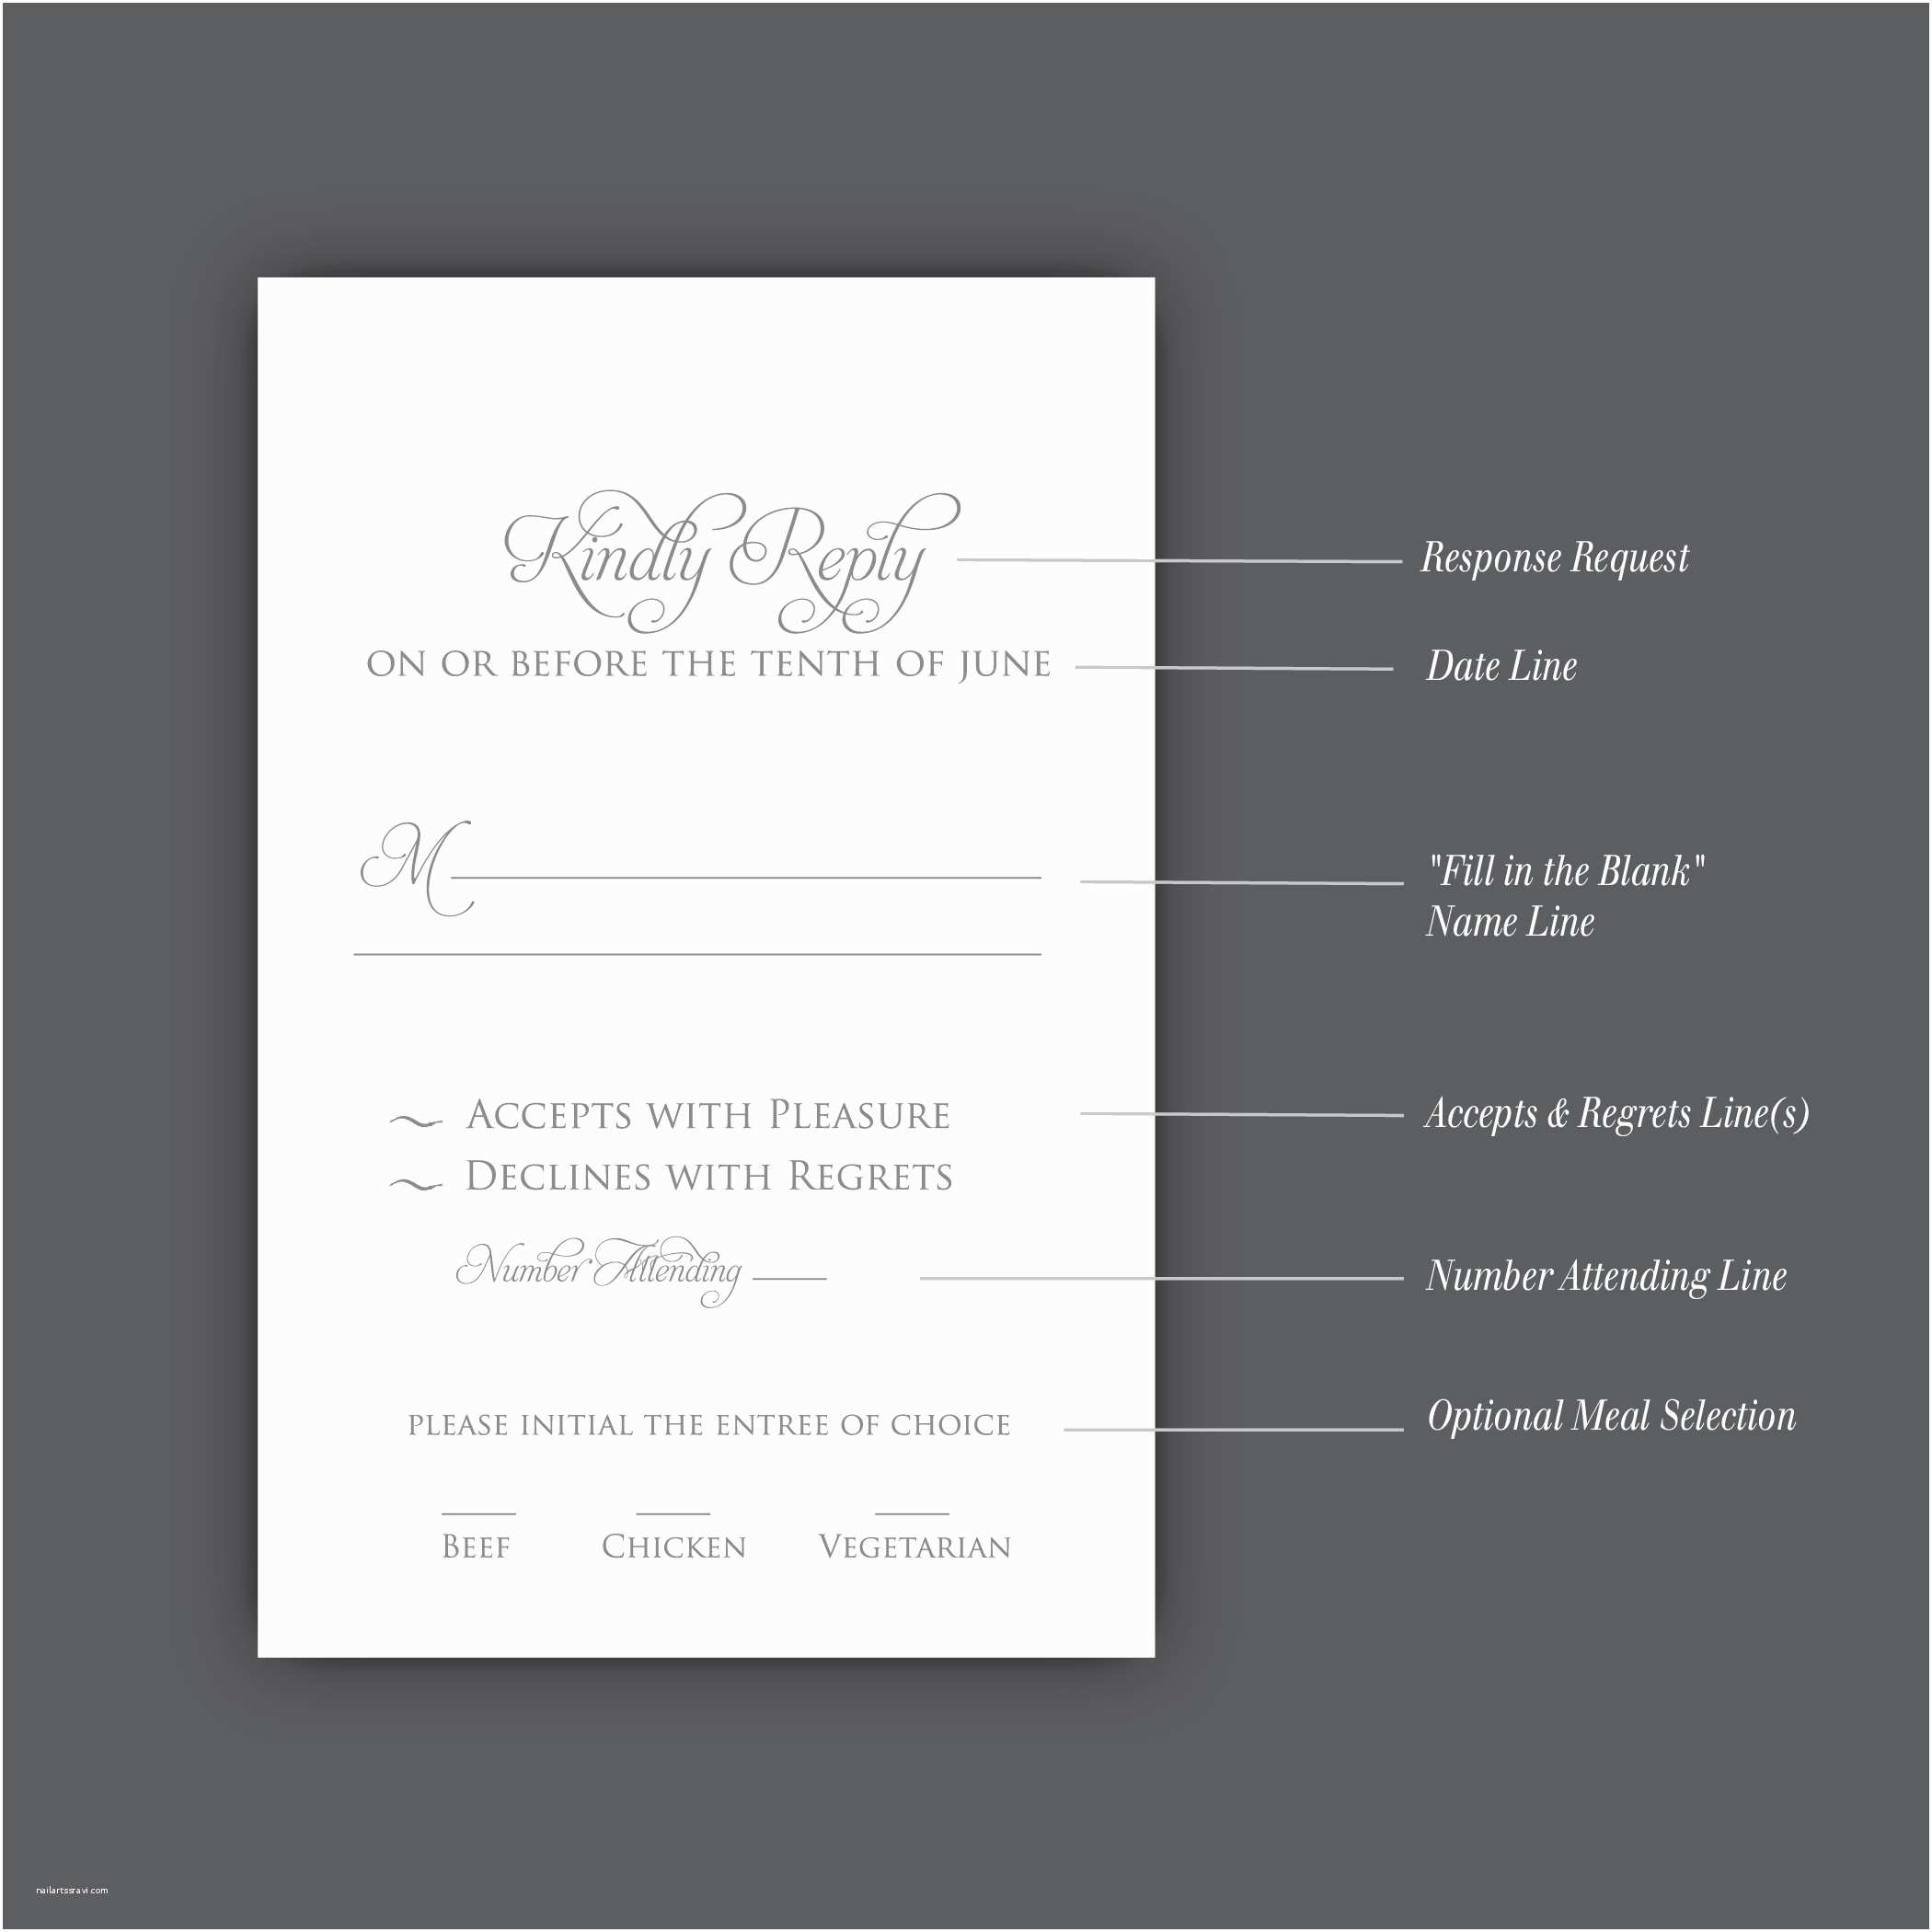 Response Card for Wedding Invitation Wording Invitation Card Wedding Invitation Reply Card Wording